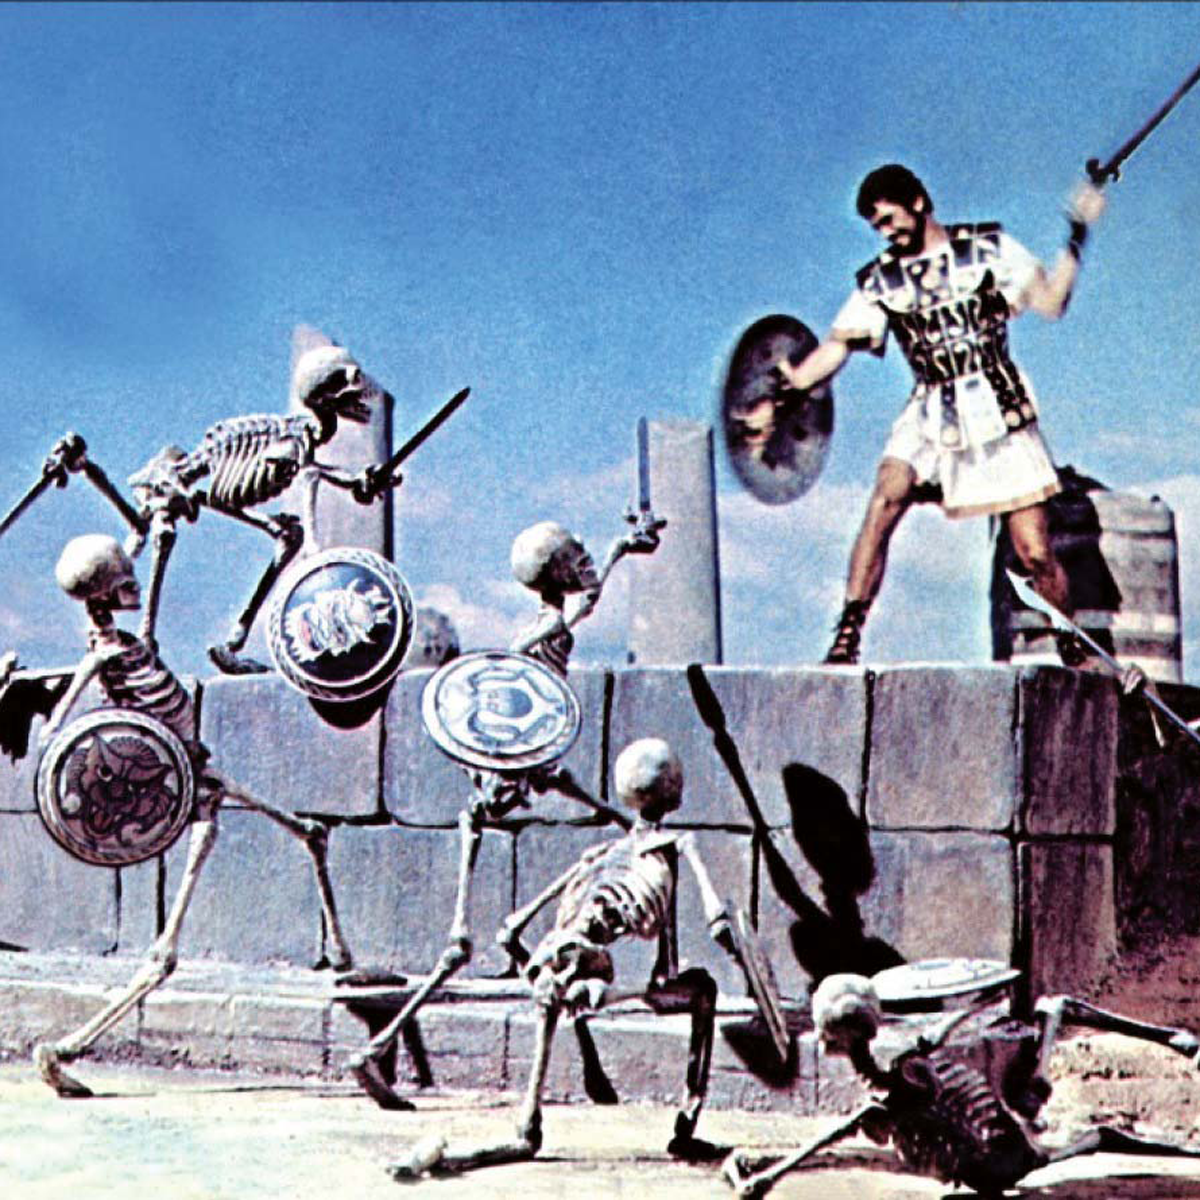 ISTYA 240 Jason and the Argonauts